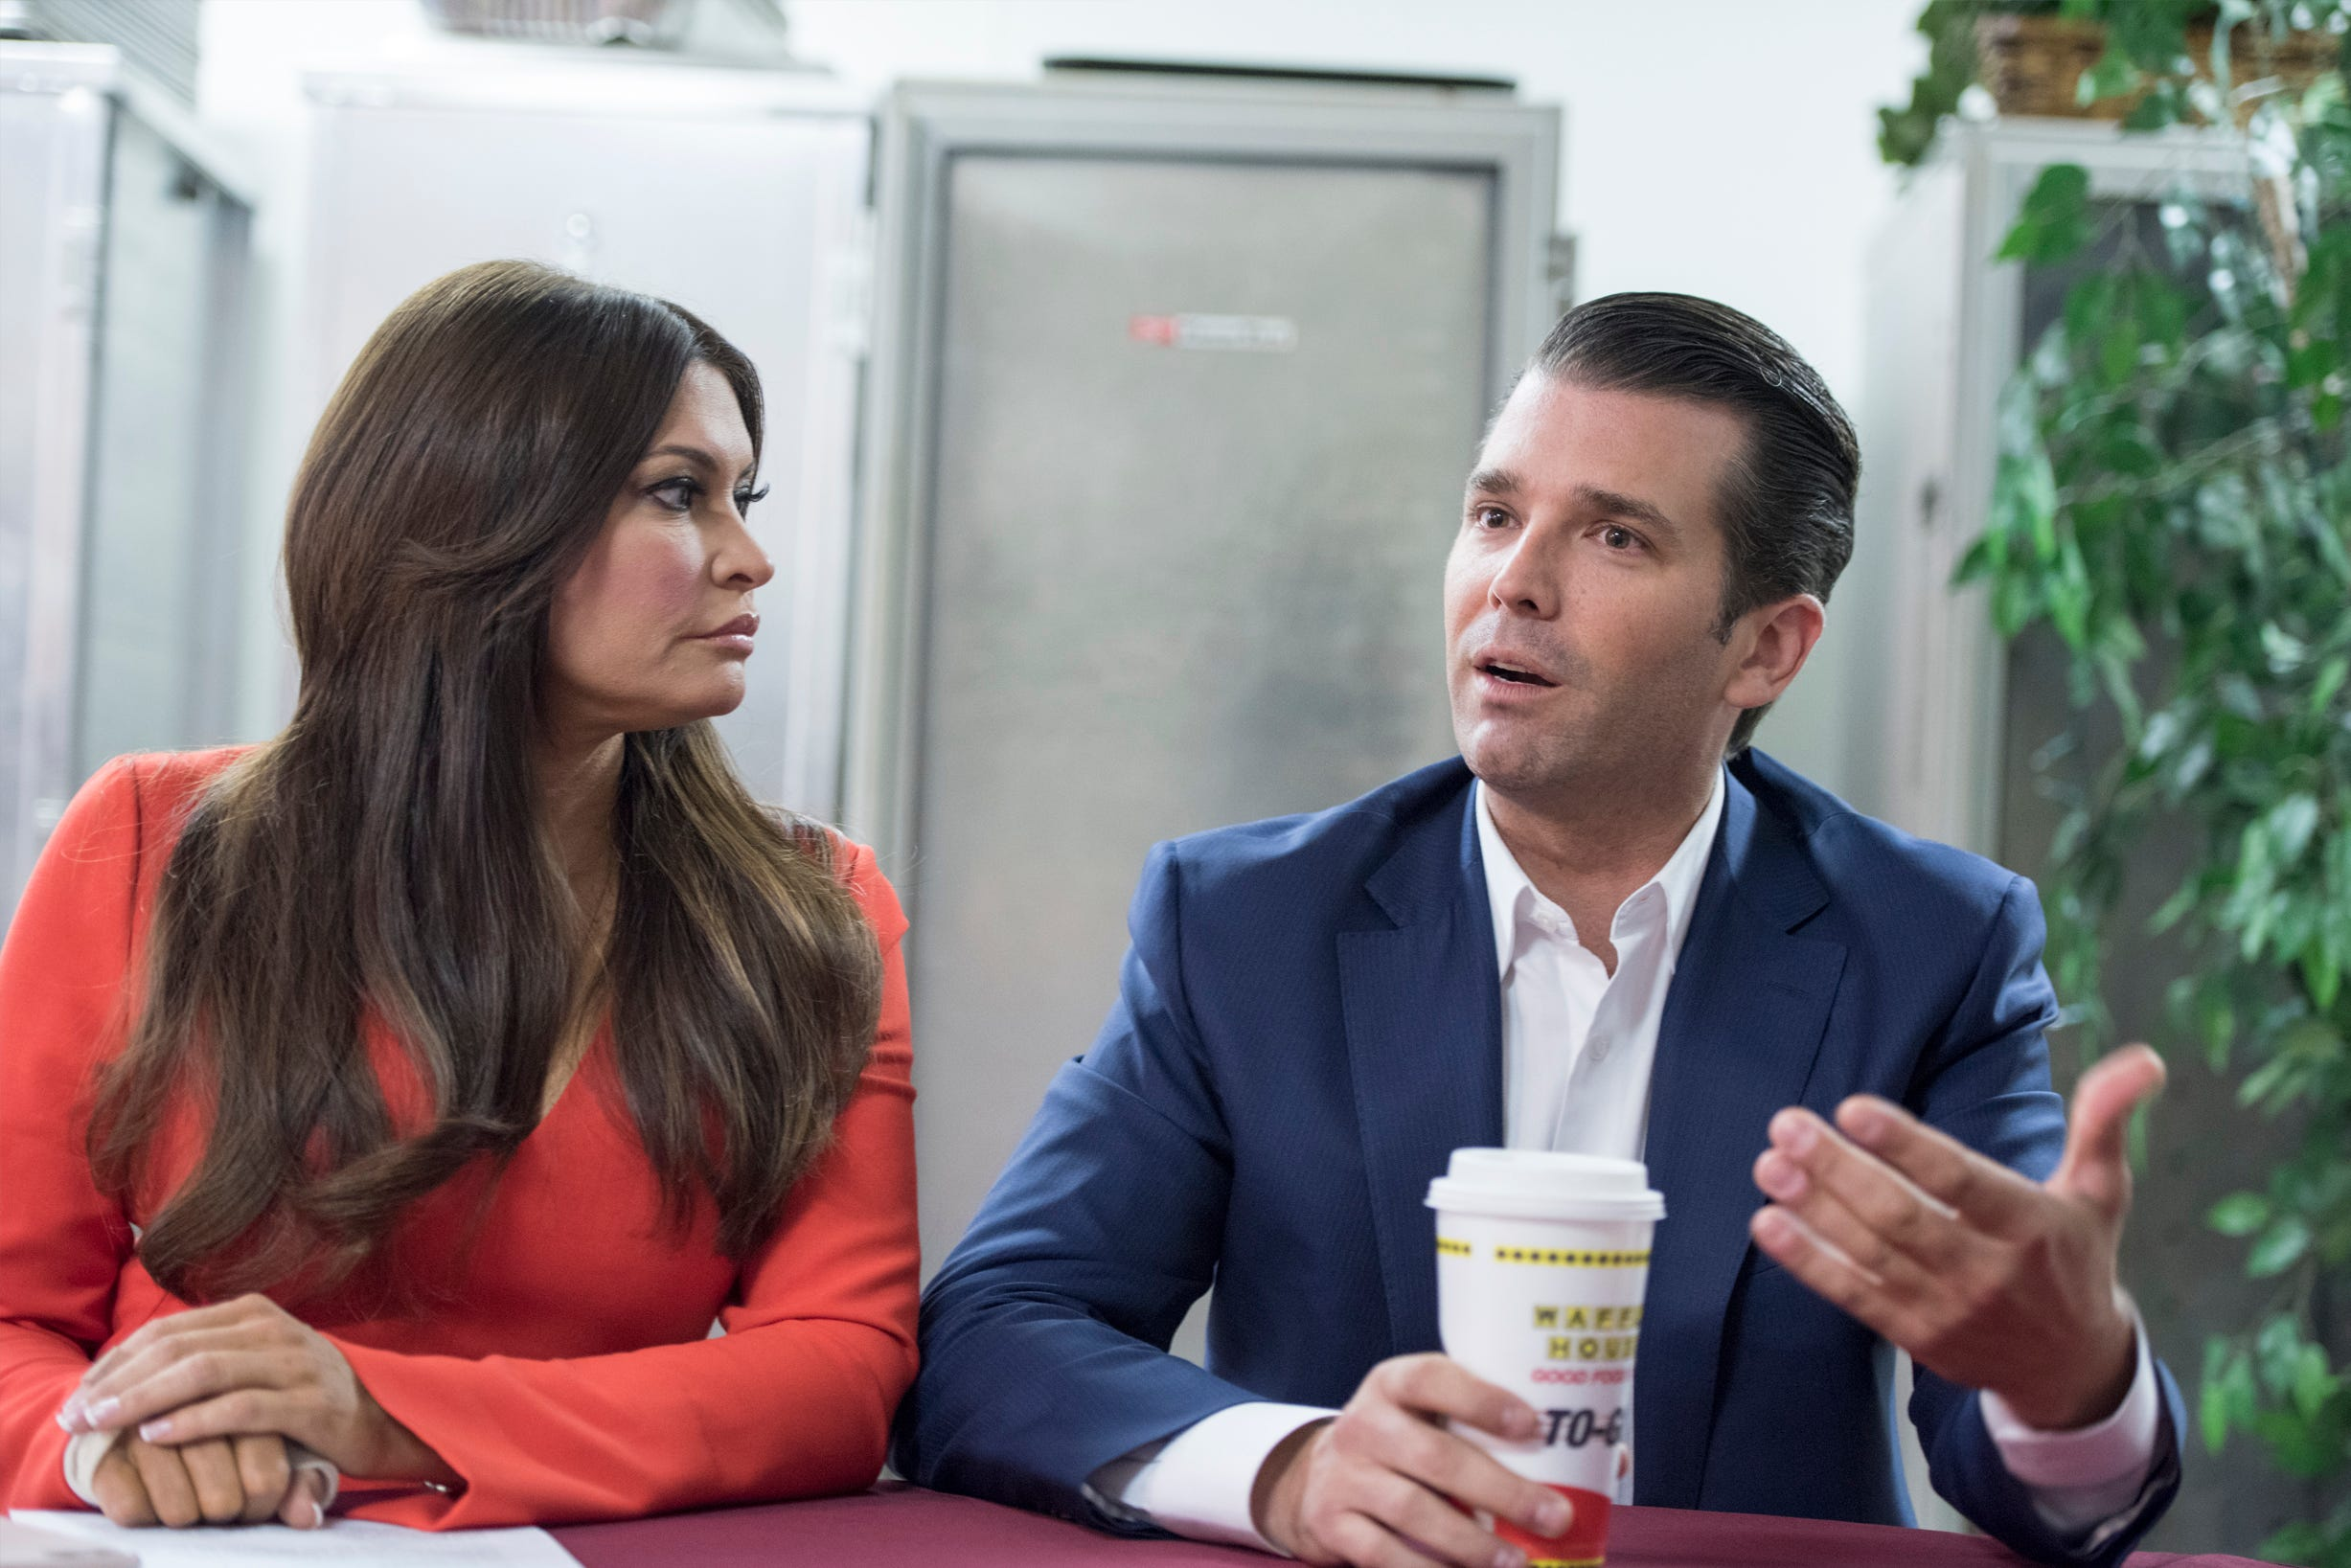 Midterm elections 2018: Donald Trump Jr. and Kimberly Guilfoyle gin up GOP base like 'rock stars'